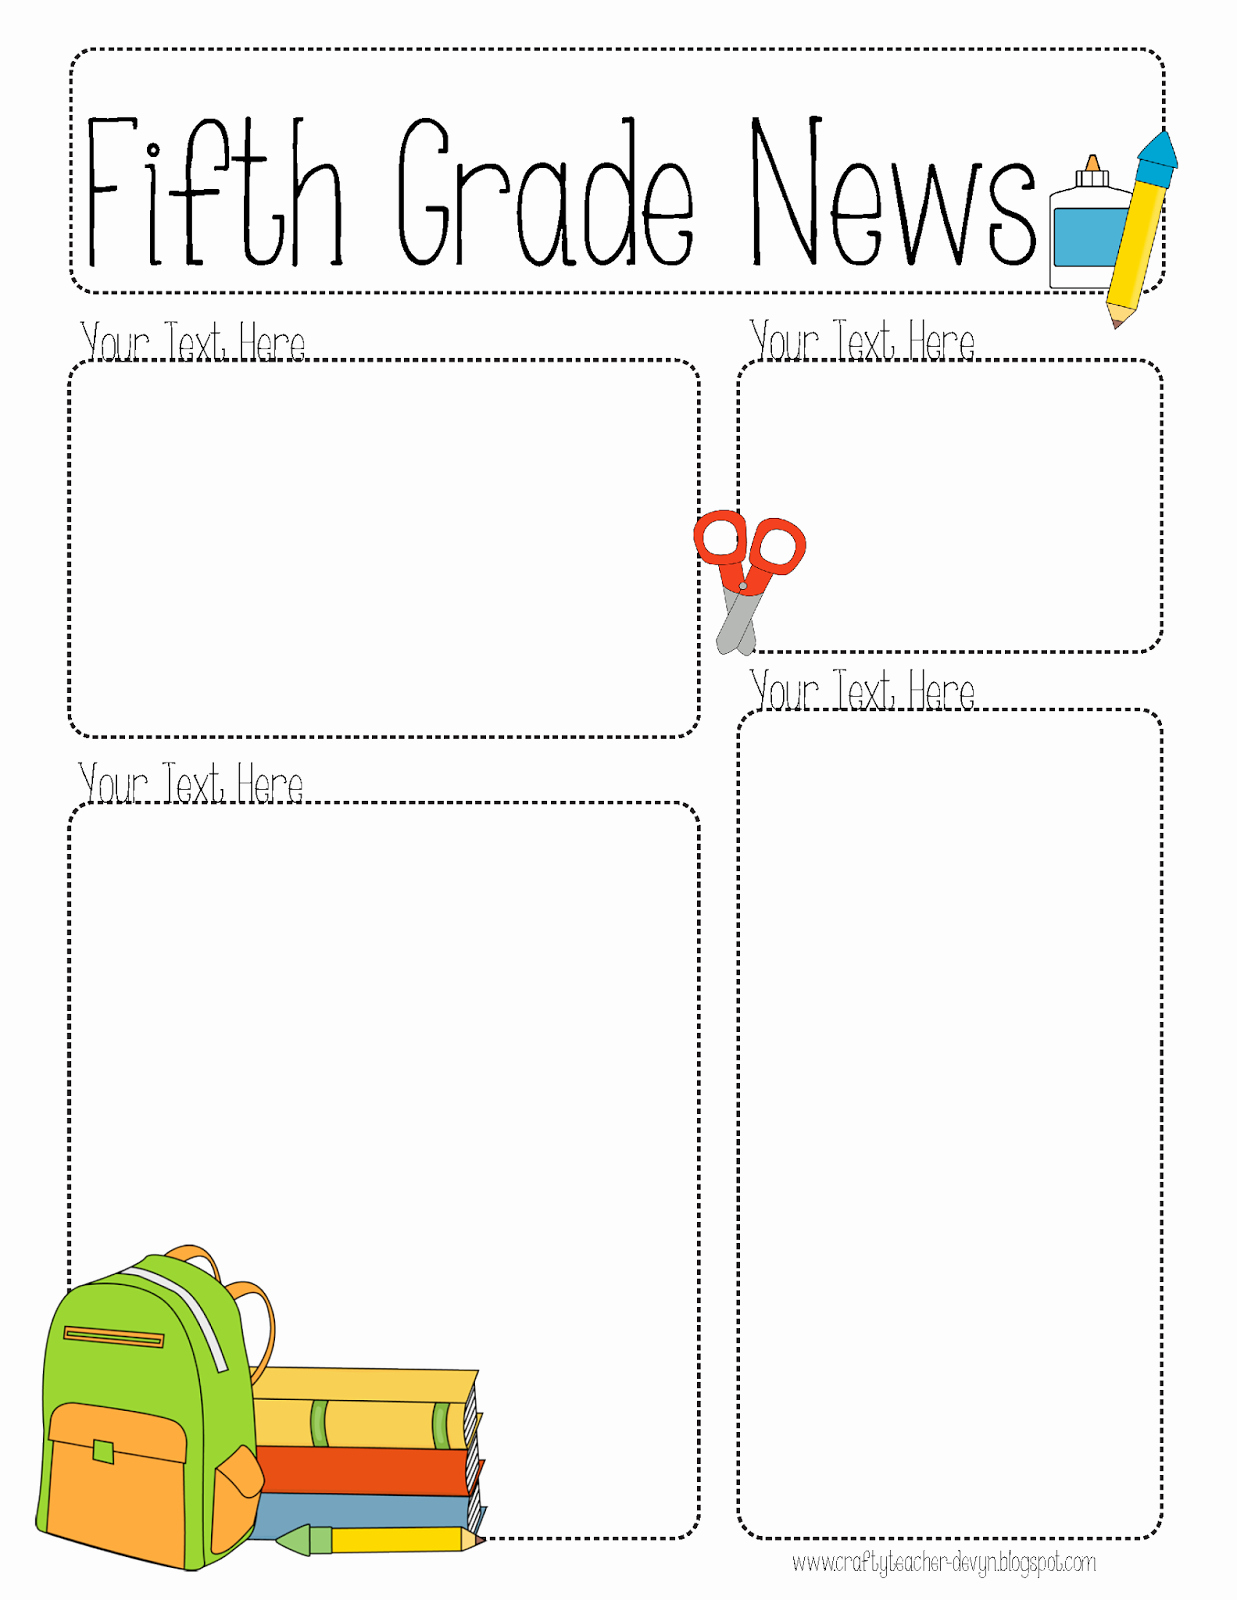 News Letter Templates for Teachers Elegant Pletely Editable Newsletter for All Grades